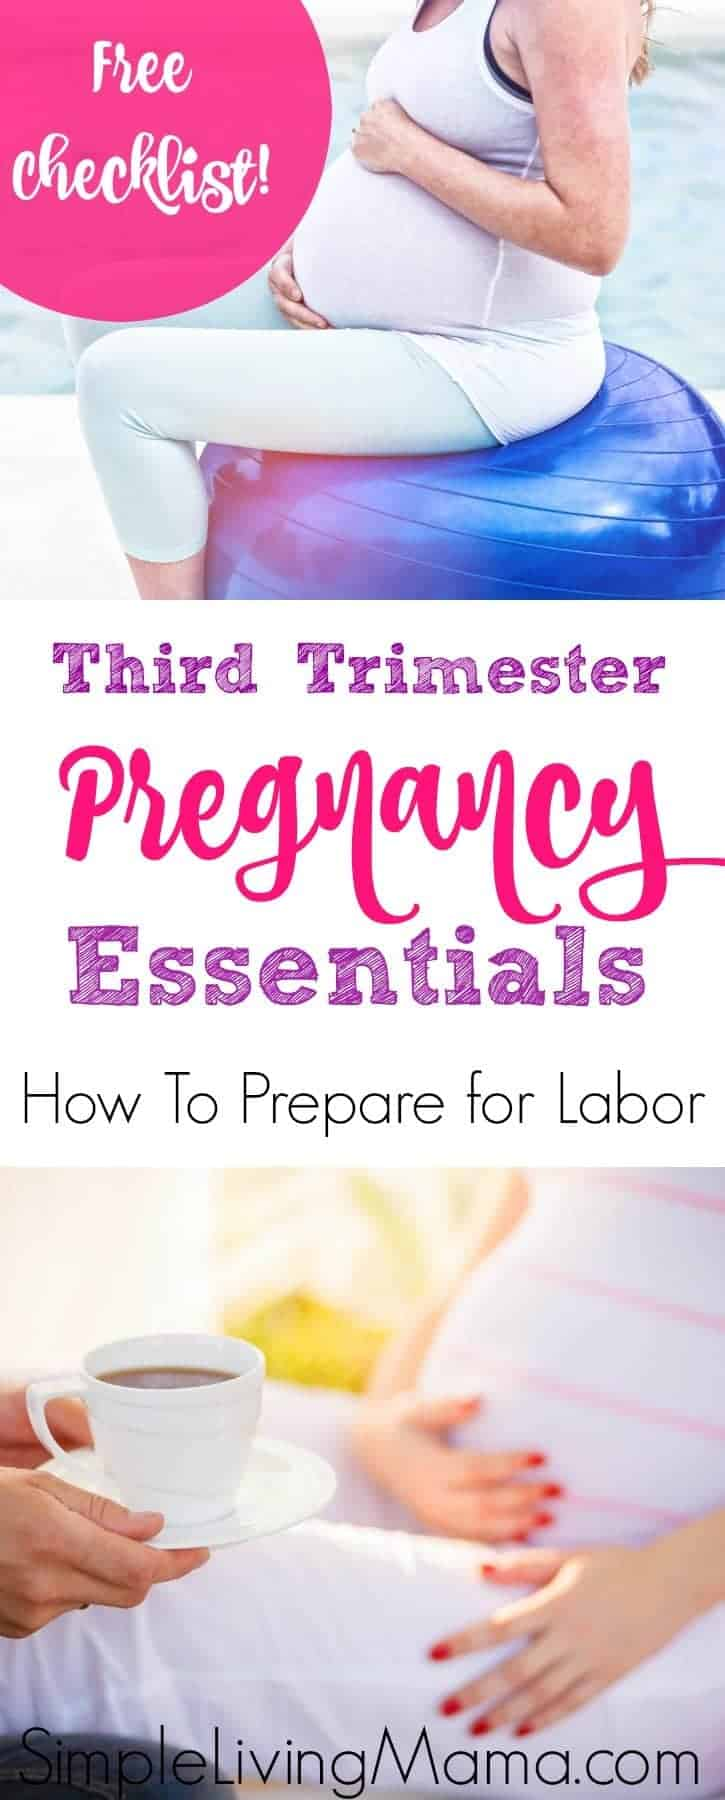 Third trimester pregnancy essentials. Learn how to prepare for labor and what products can help!